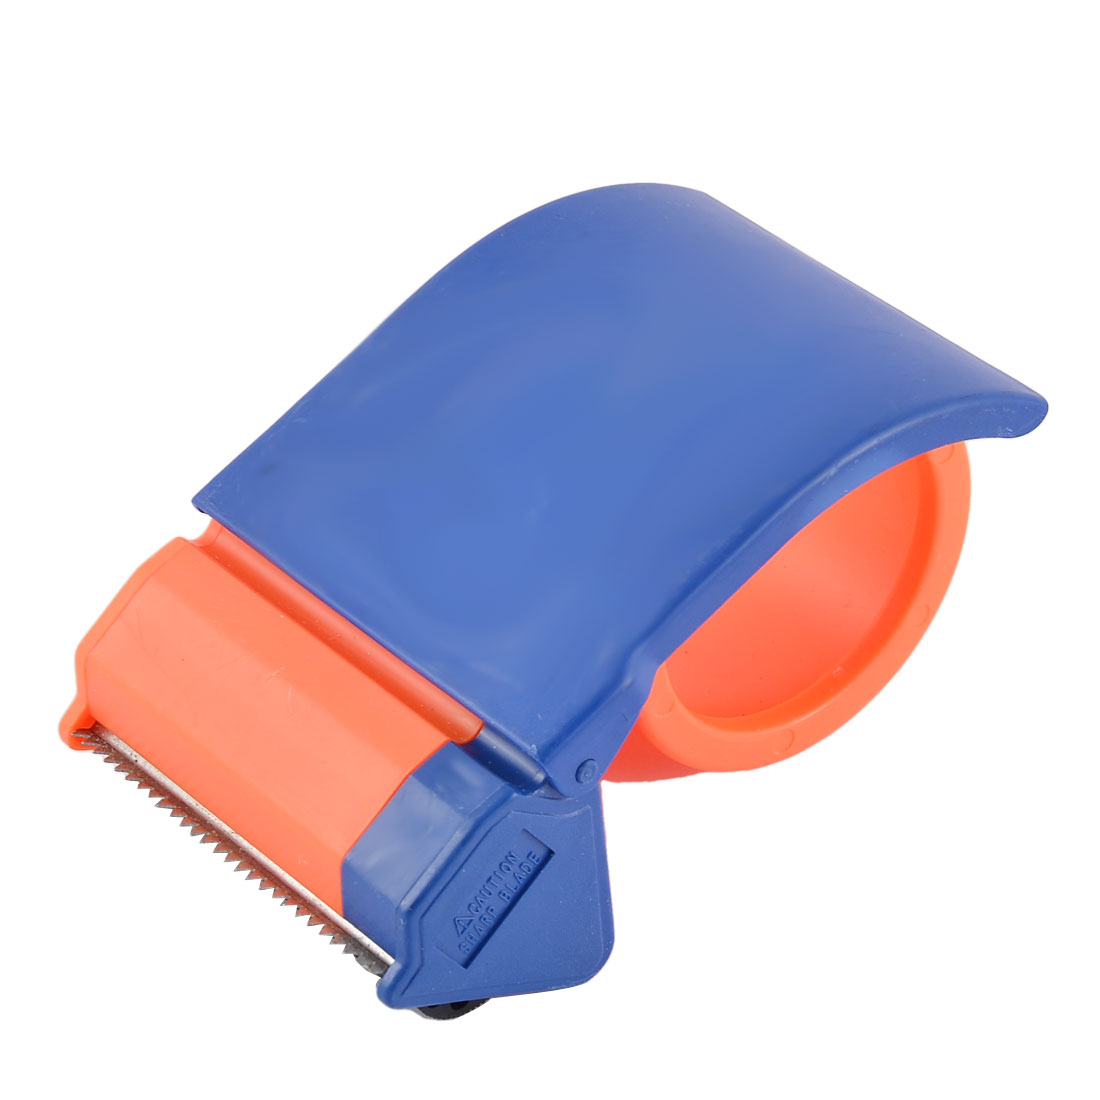 School Office Plastic Sealing Packaging Tape Dispenser Blue Orange 7cm Wide